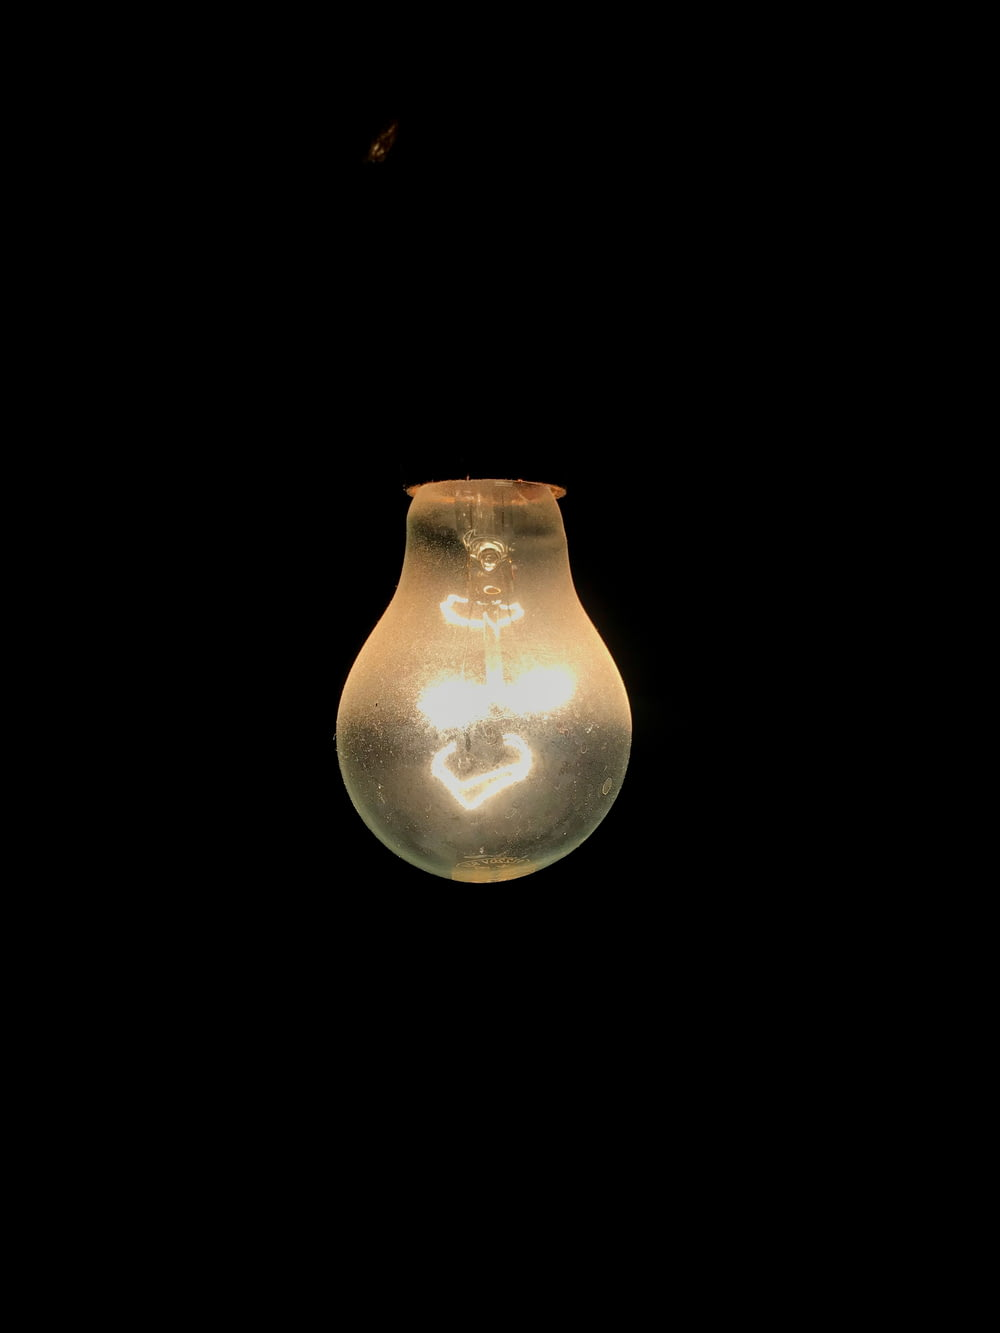 light bulb with black background